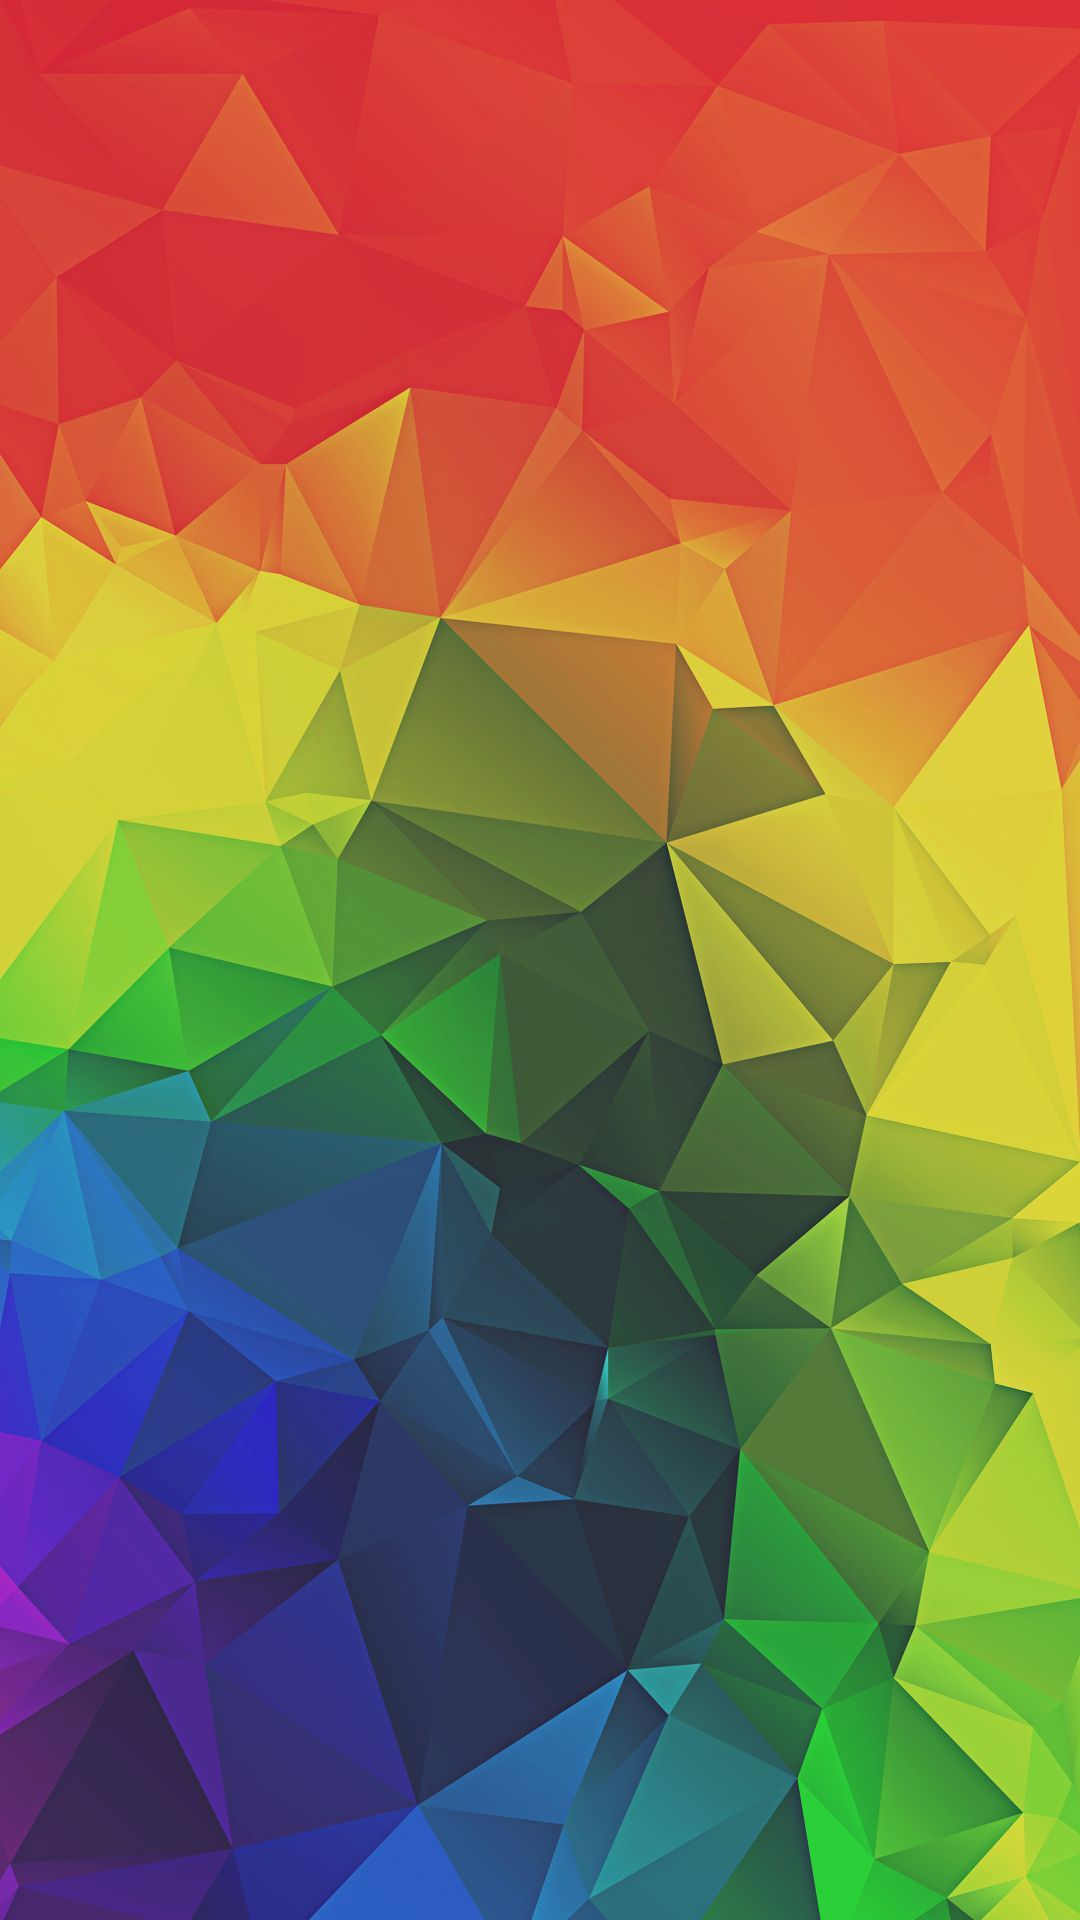 40 Rainbow Phone Wallpapers Download At Wallpaperbro Rainbow Wallpaper Abstract Iphone 6 Wallpaper